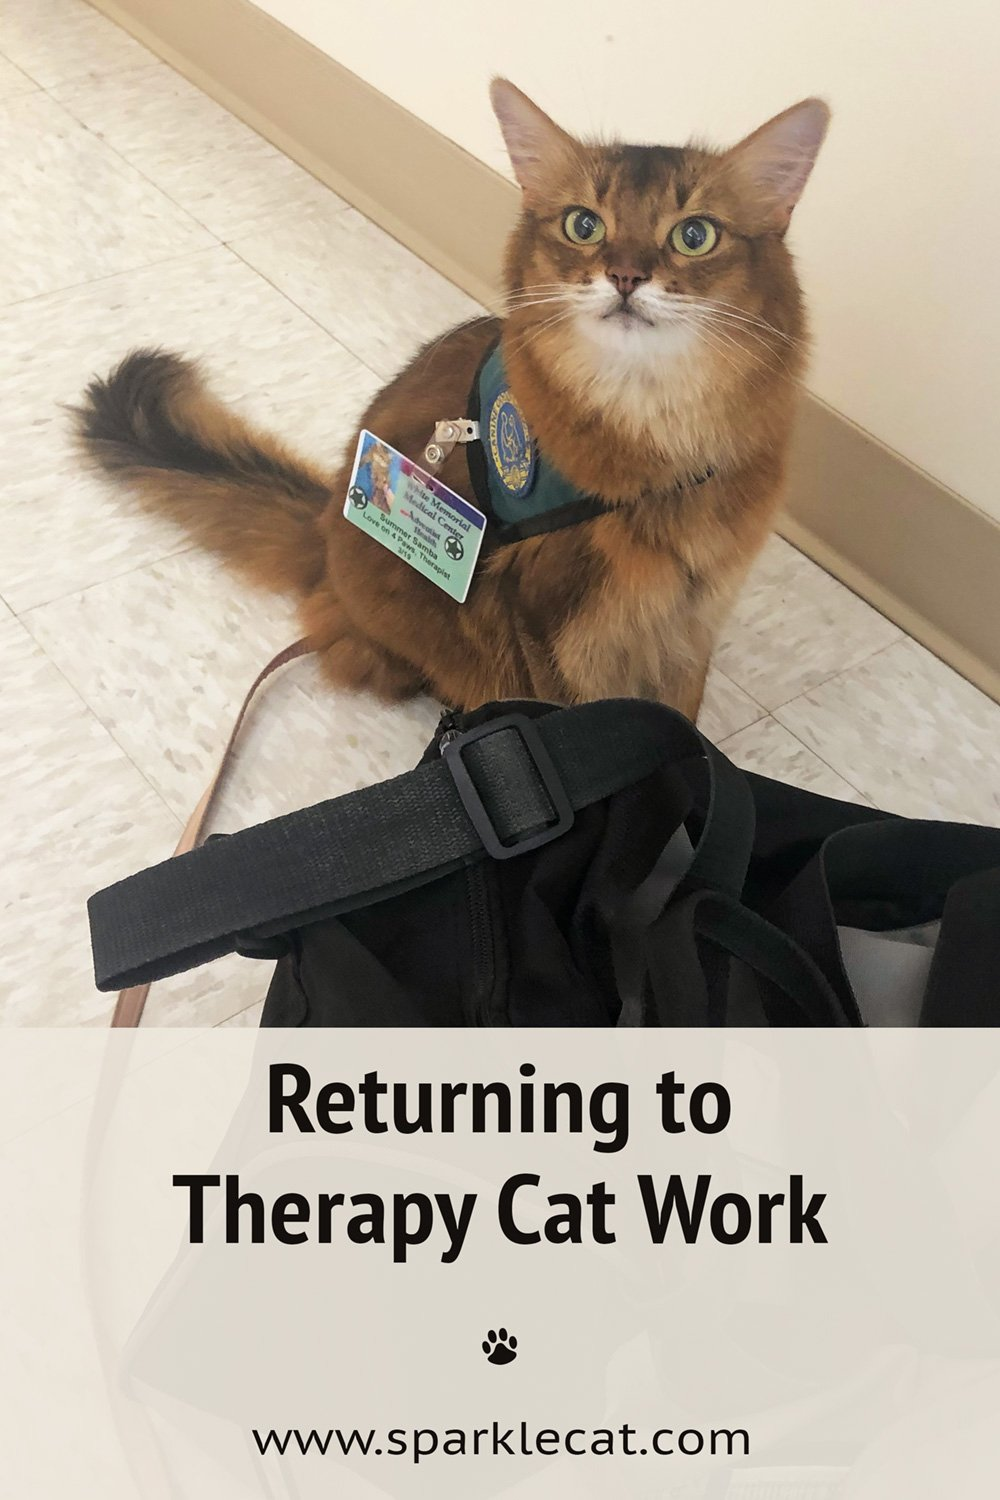 First Therapy Cat Visit at the Big Hospital in Over a Year!